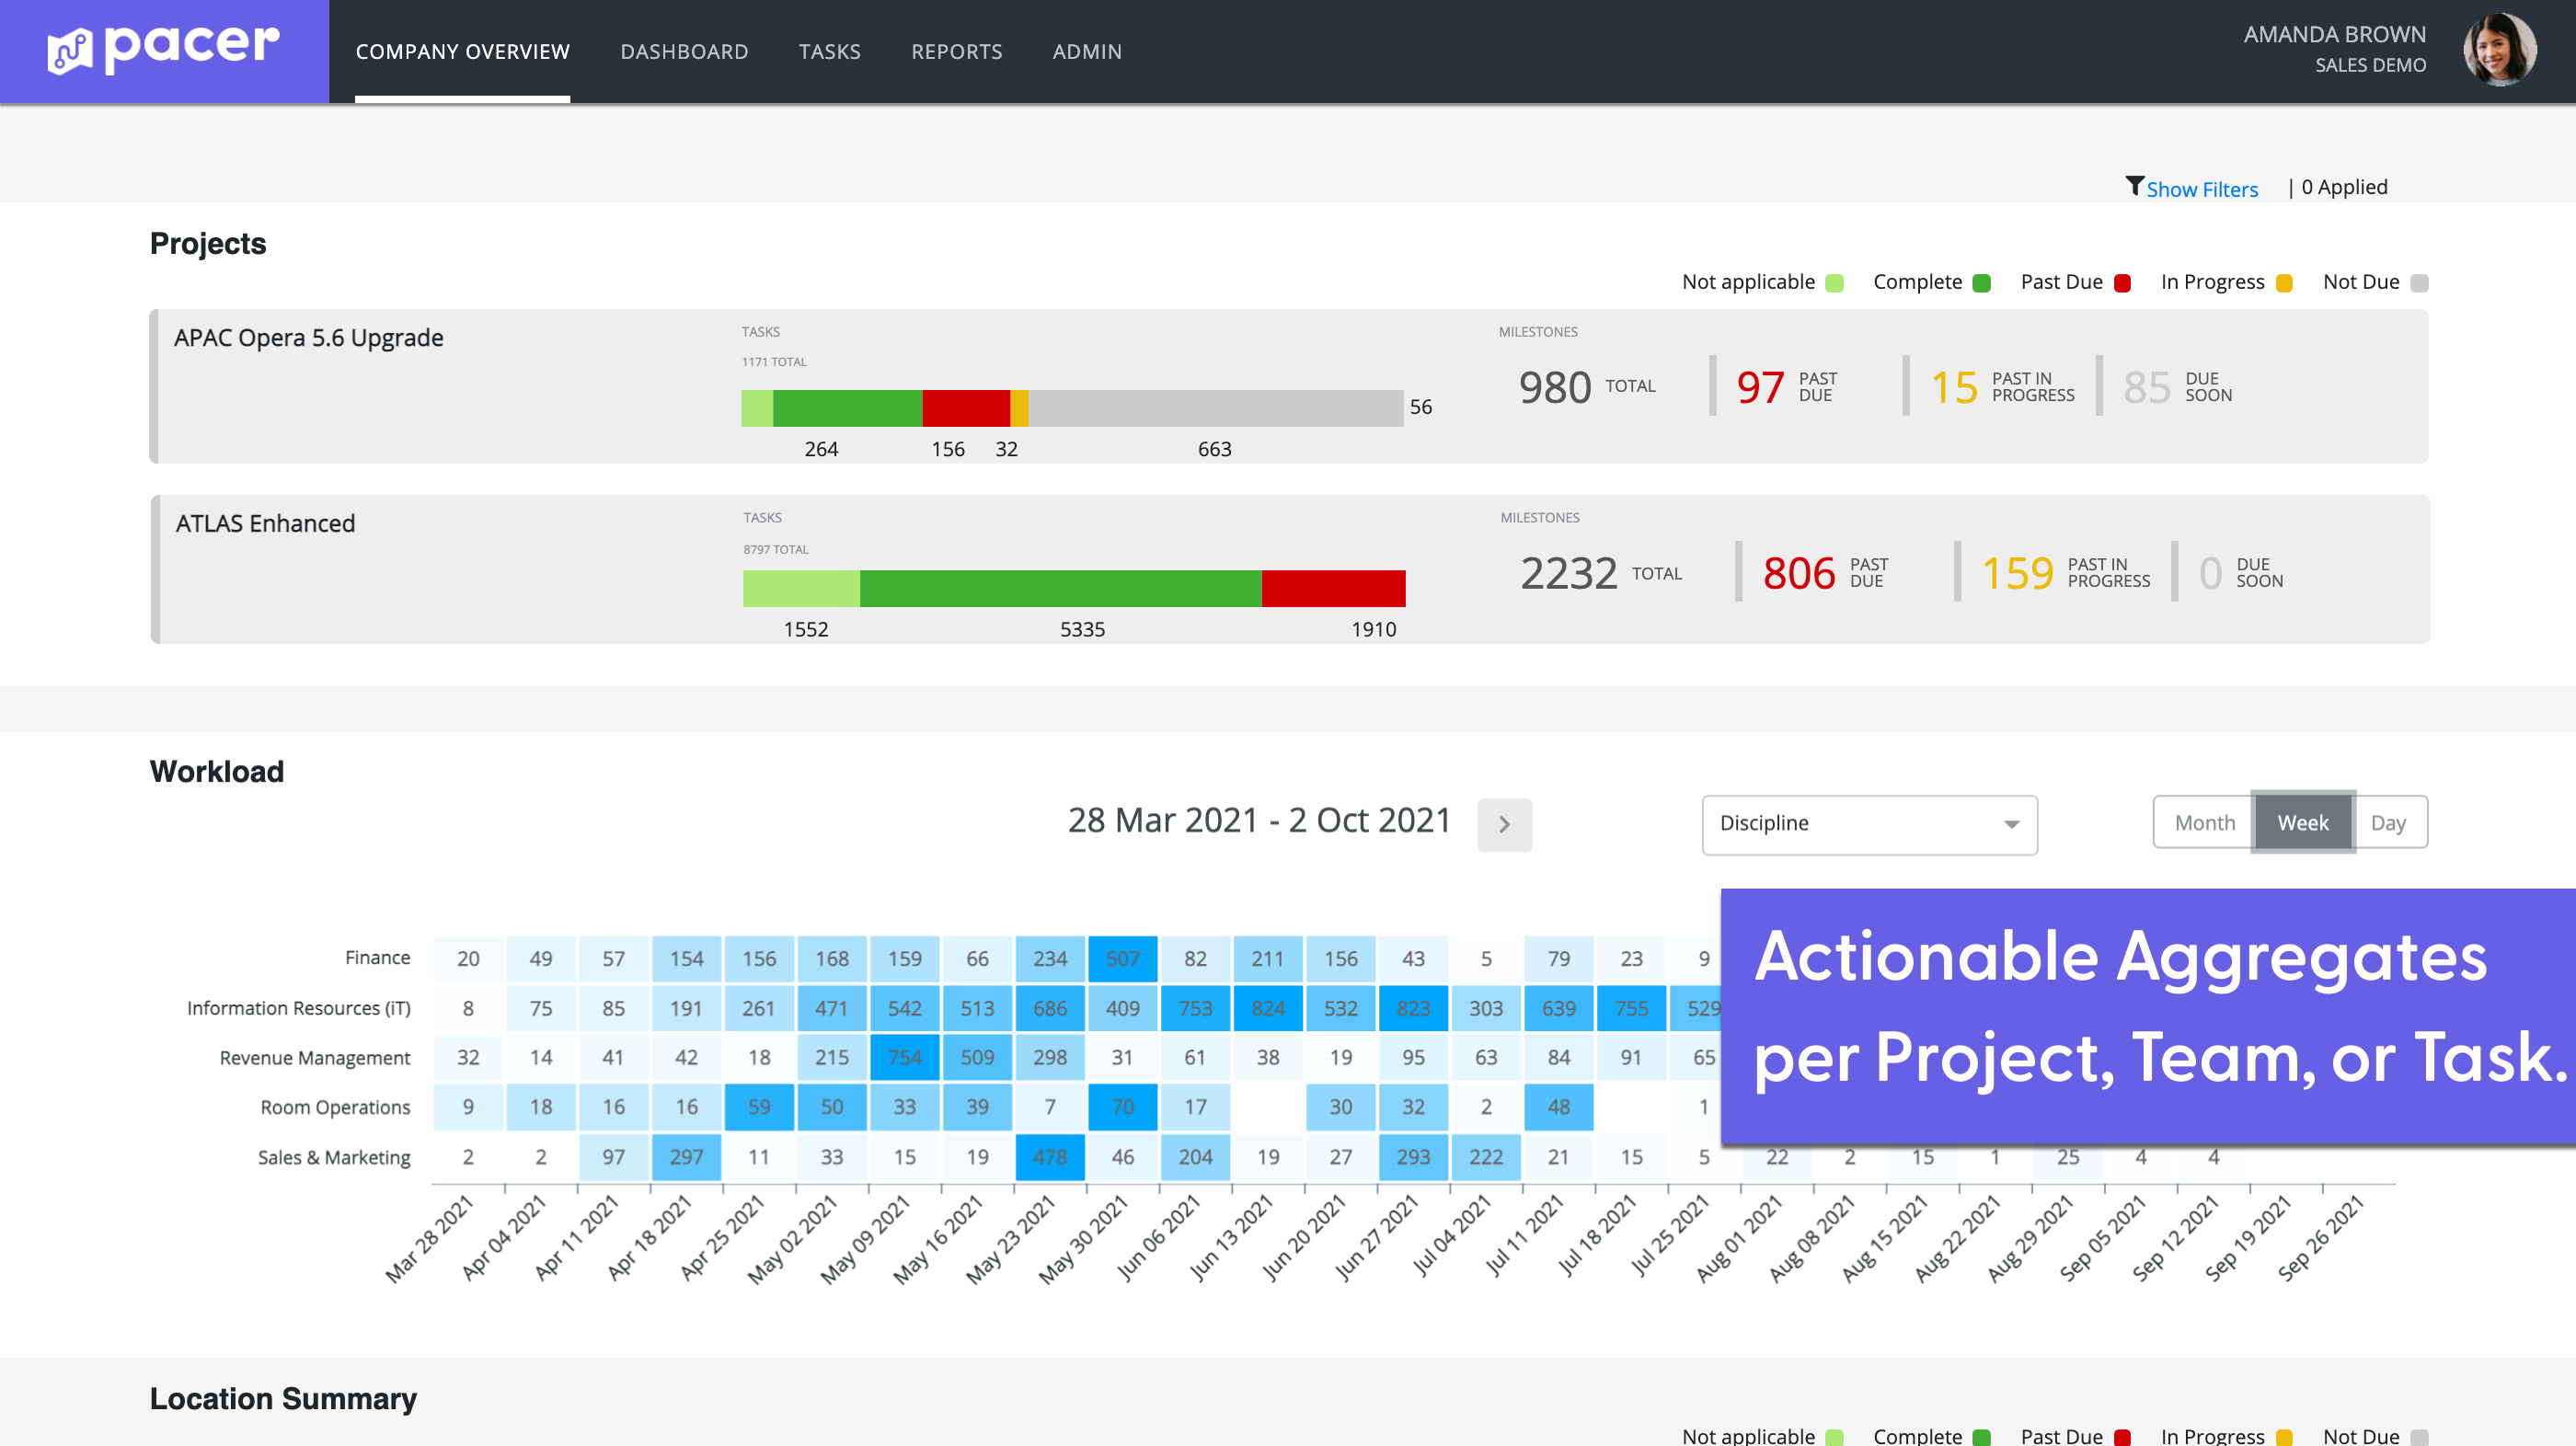 Providing Actionable Data - Pacer turns data into action by giving you command and control. Prioritize time-sensitive tasks, export stats and insights into weekly status reports, access multiple views of project milestones to troubleshoot potential delays